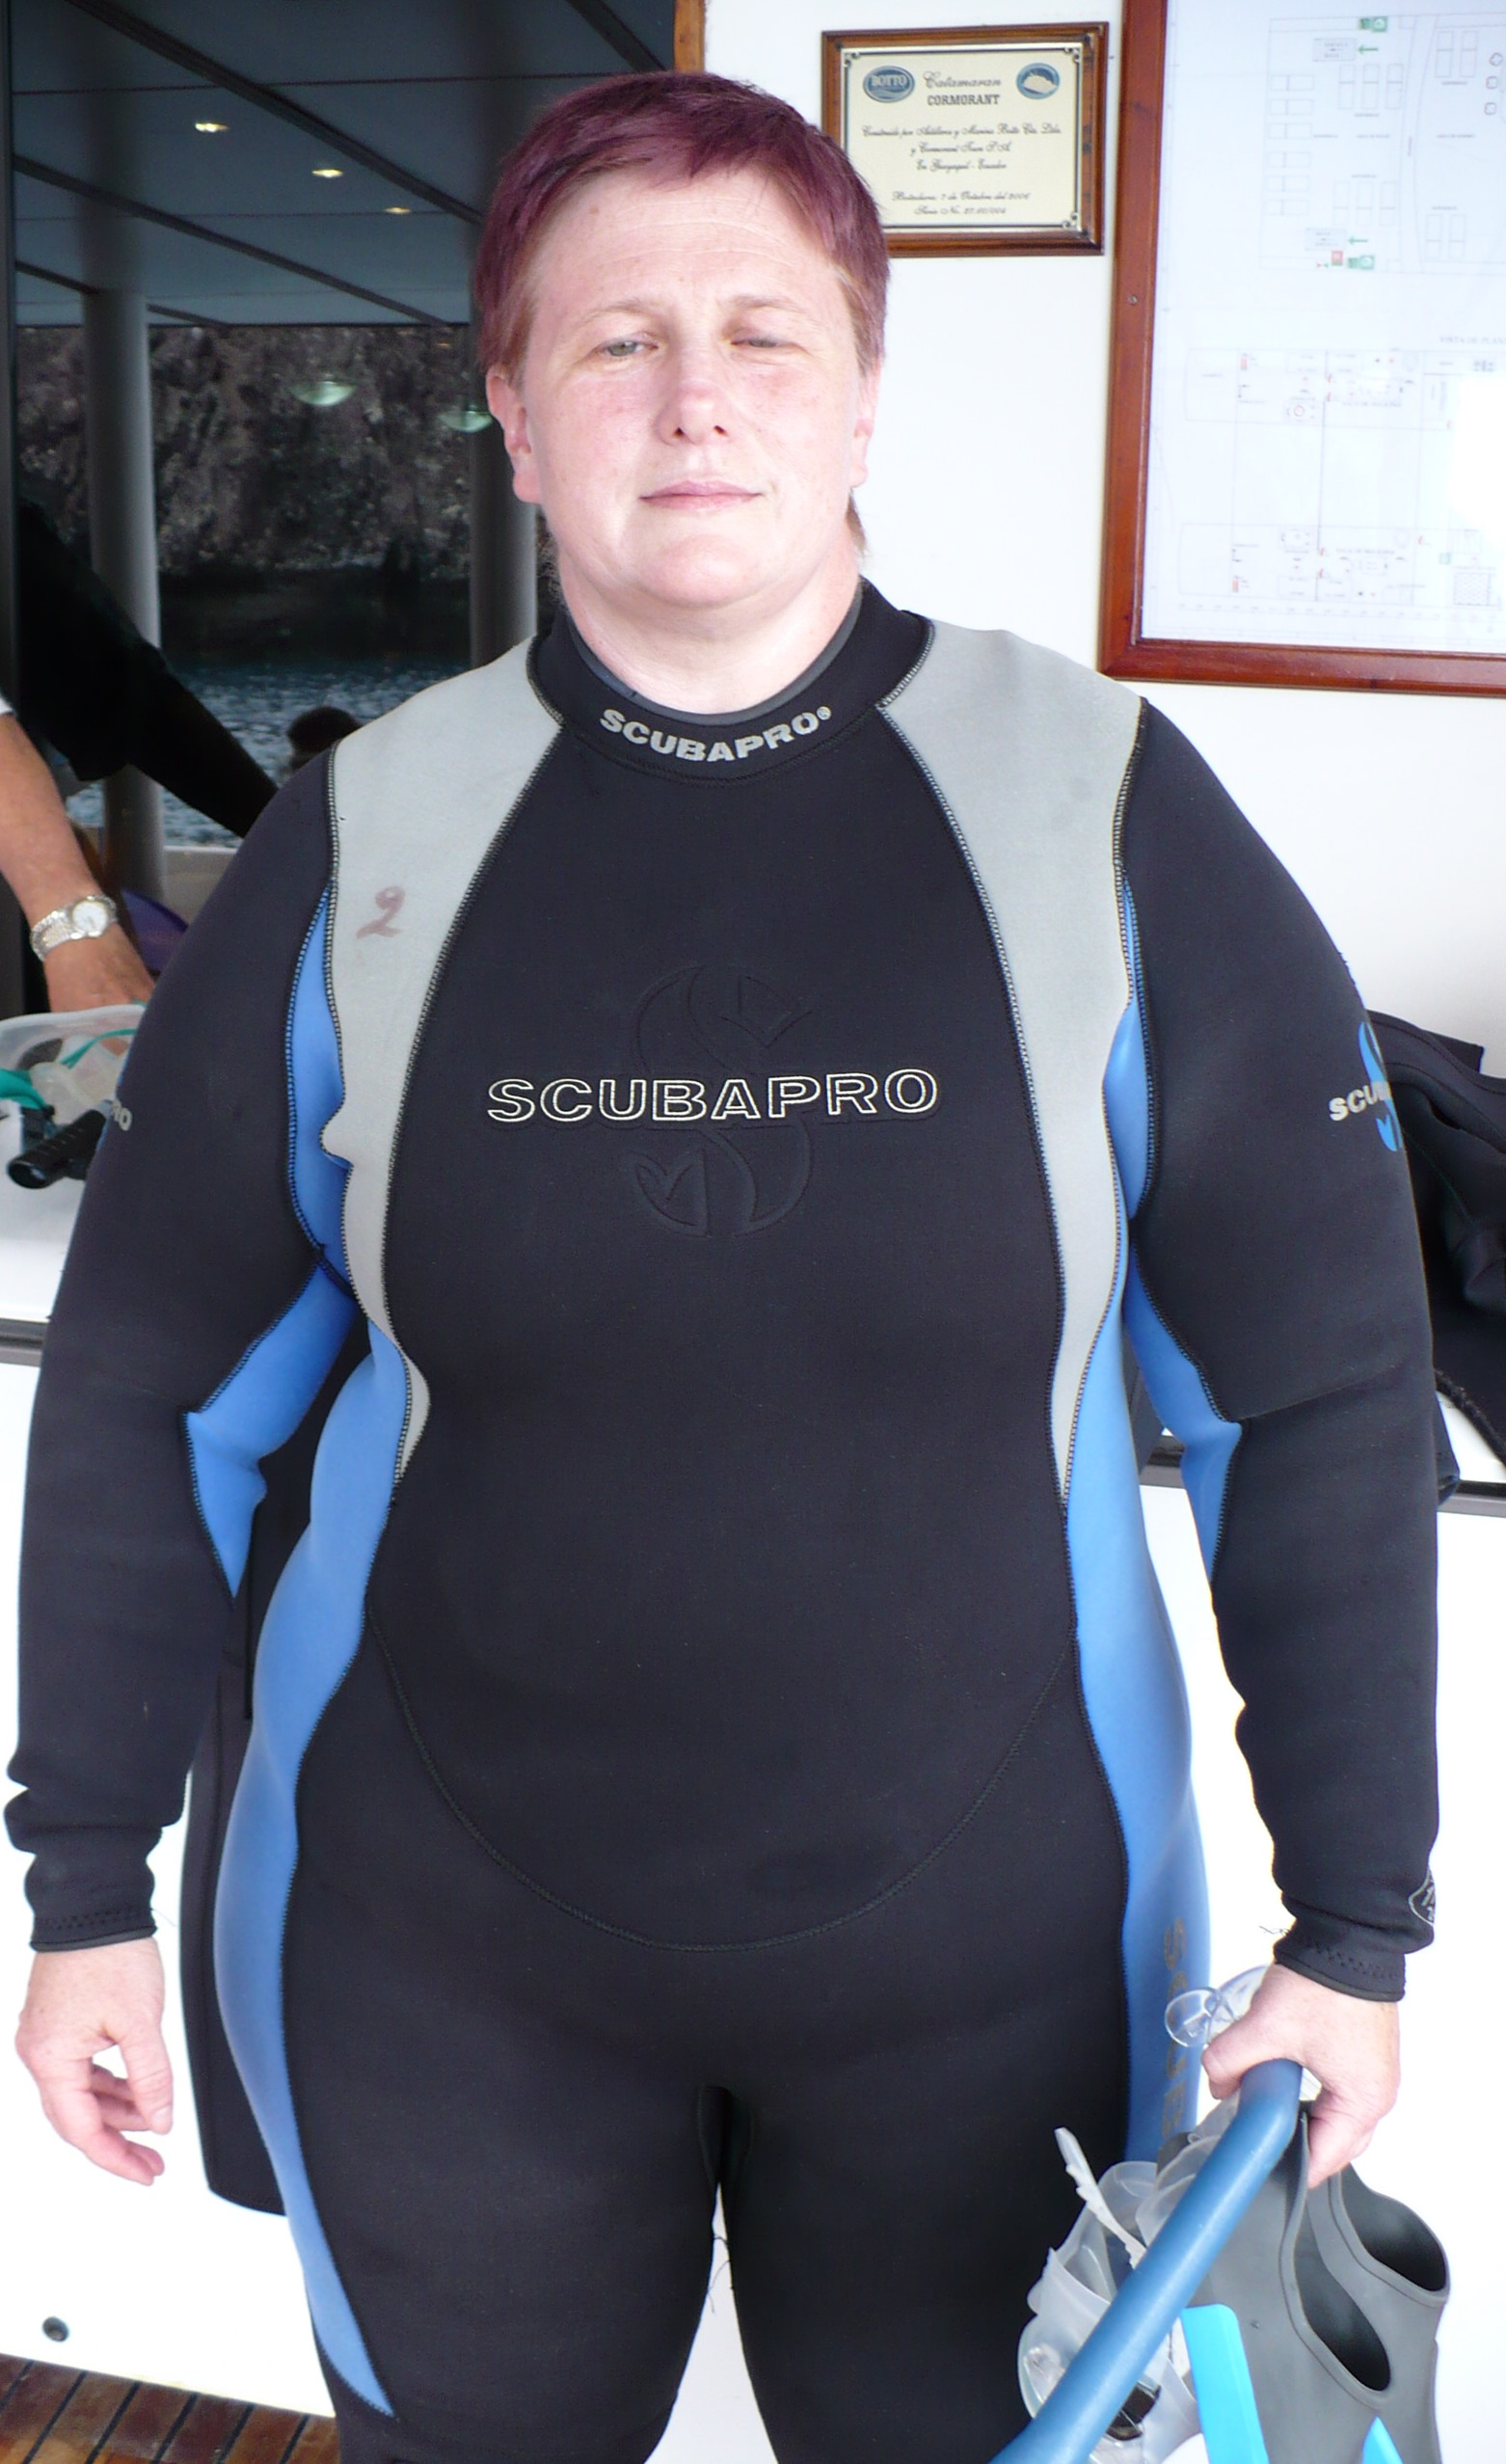 The Pale Sausage in Neoprene Casing